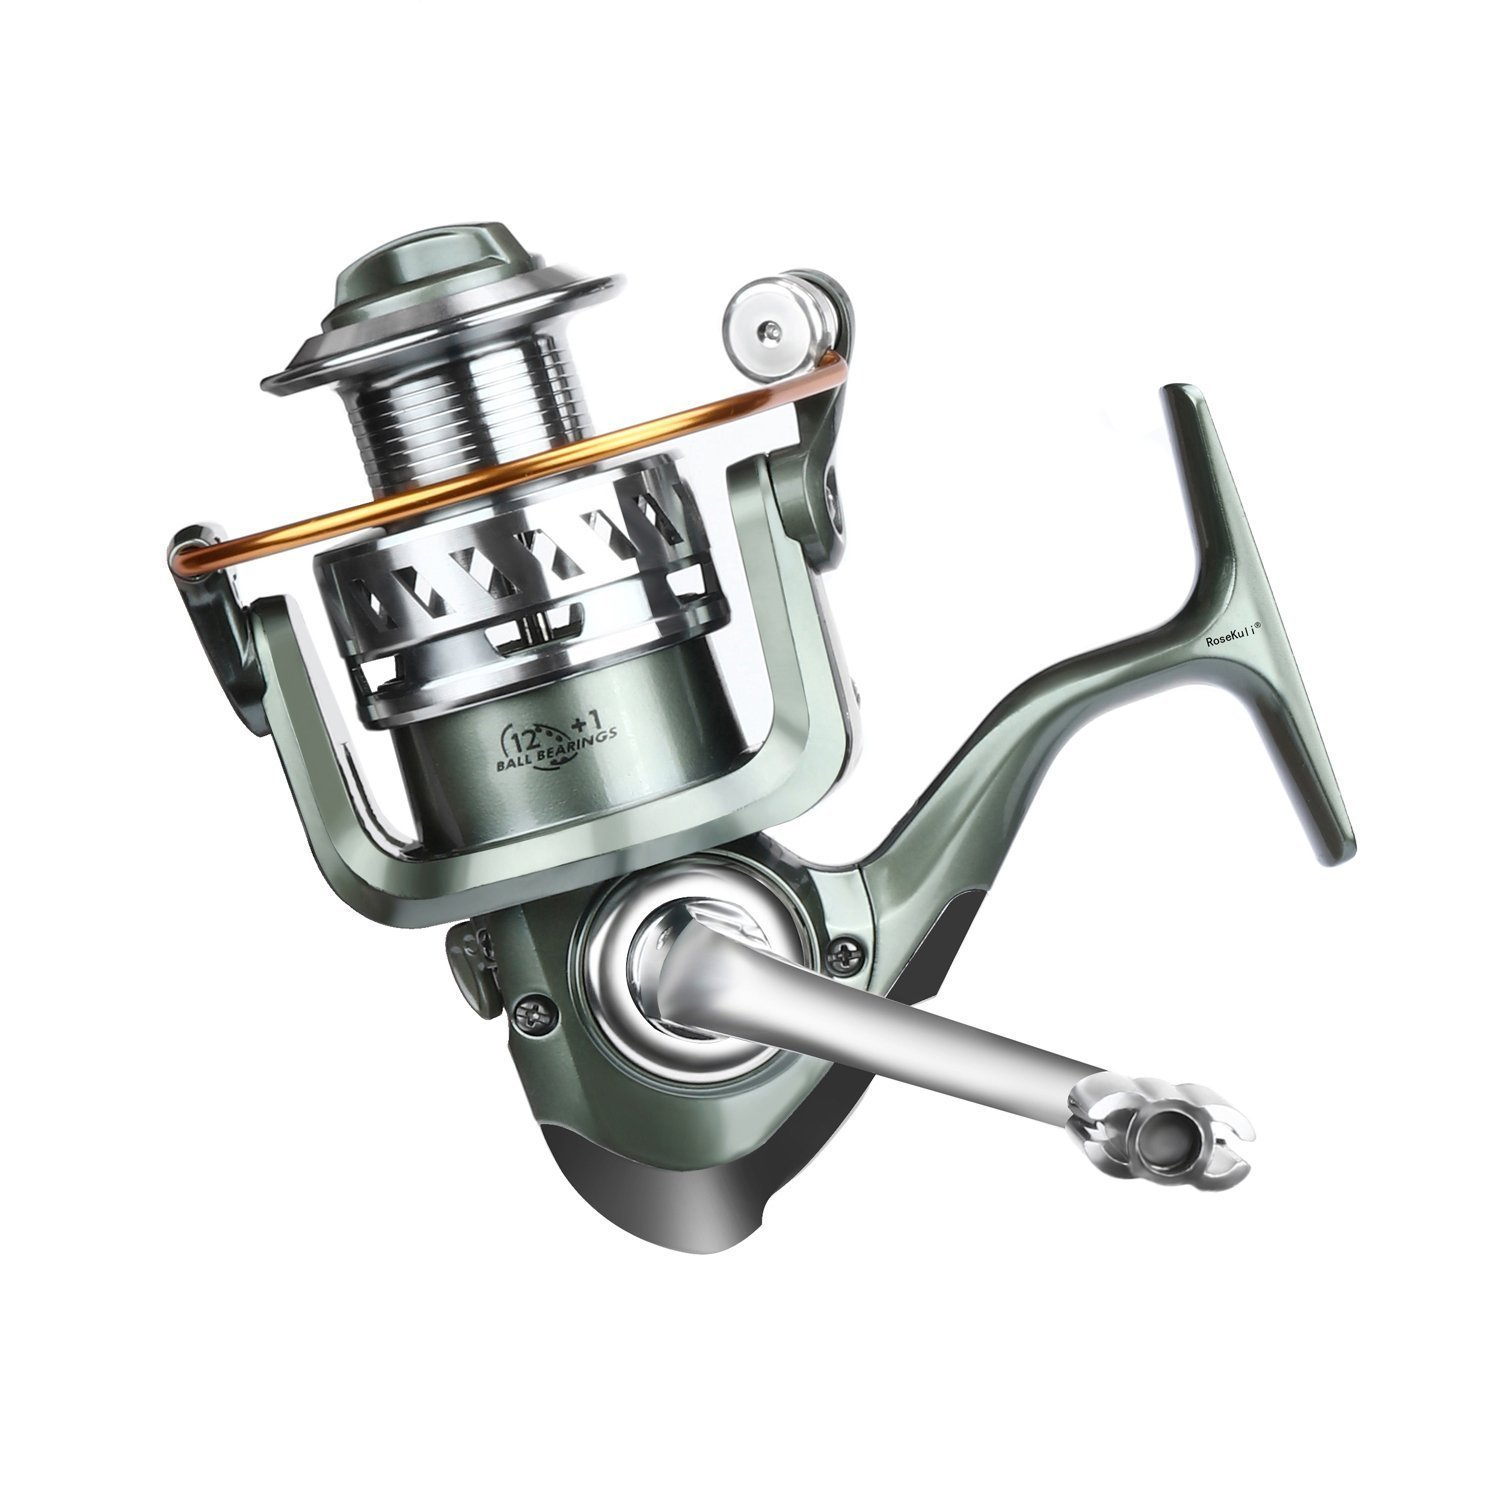 Rose Kuli Spinning Fishing Reel – Stainless Steel Saltwater 12 1 Ball Bearings Lightweight Smooth Left Right Interchangeable Baitcasting Reels